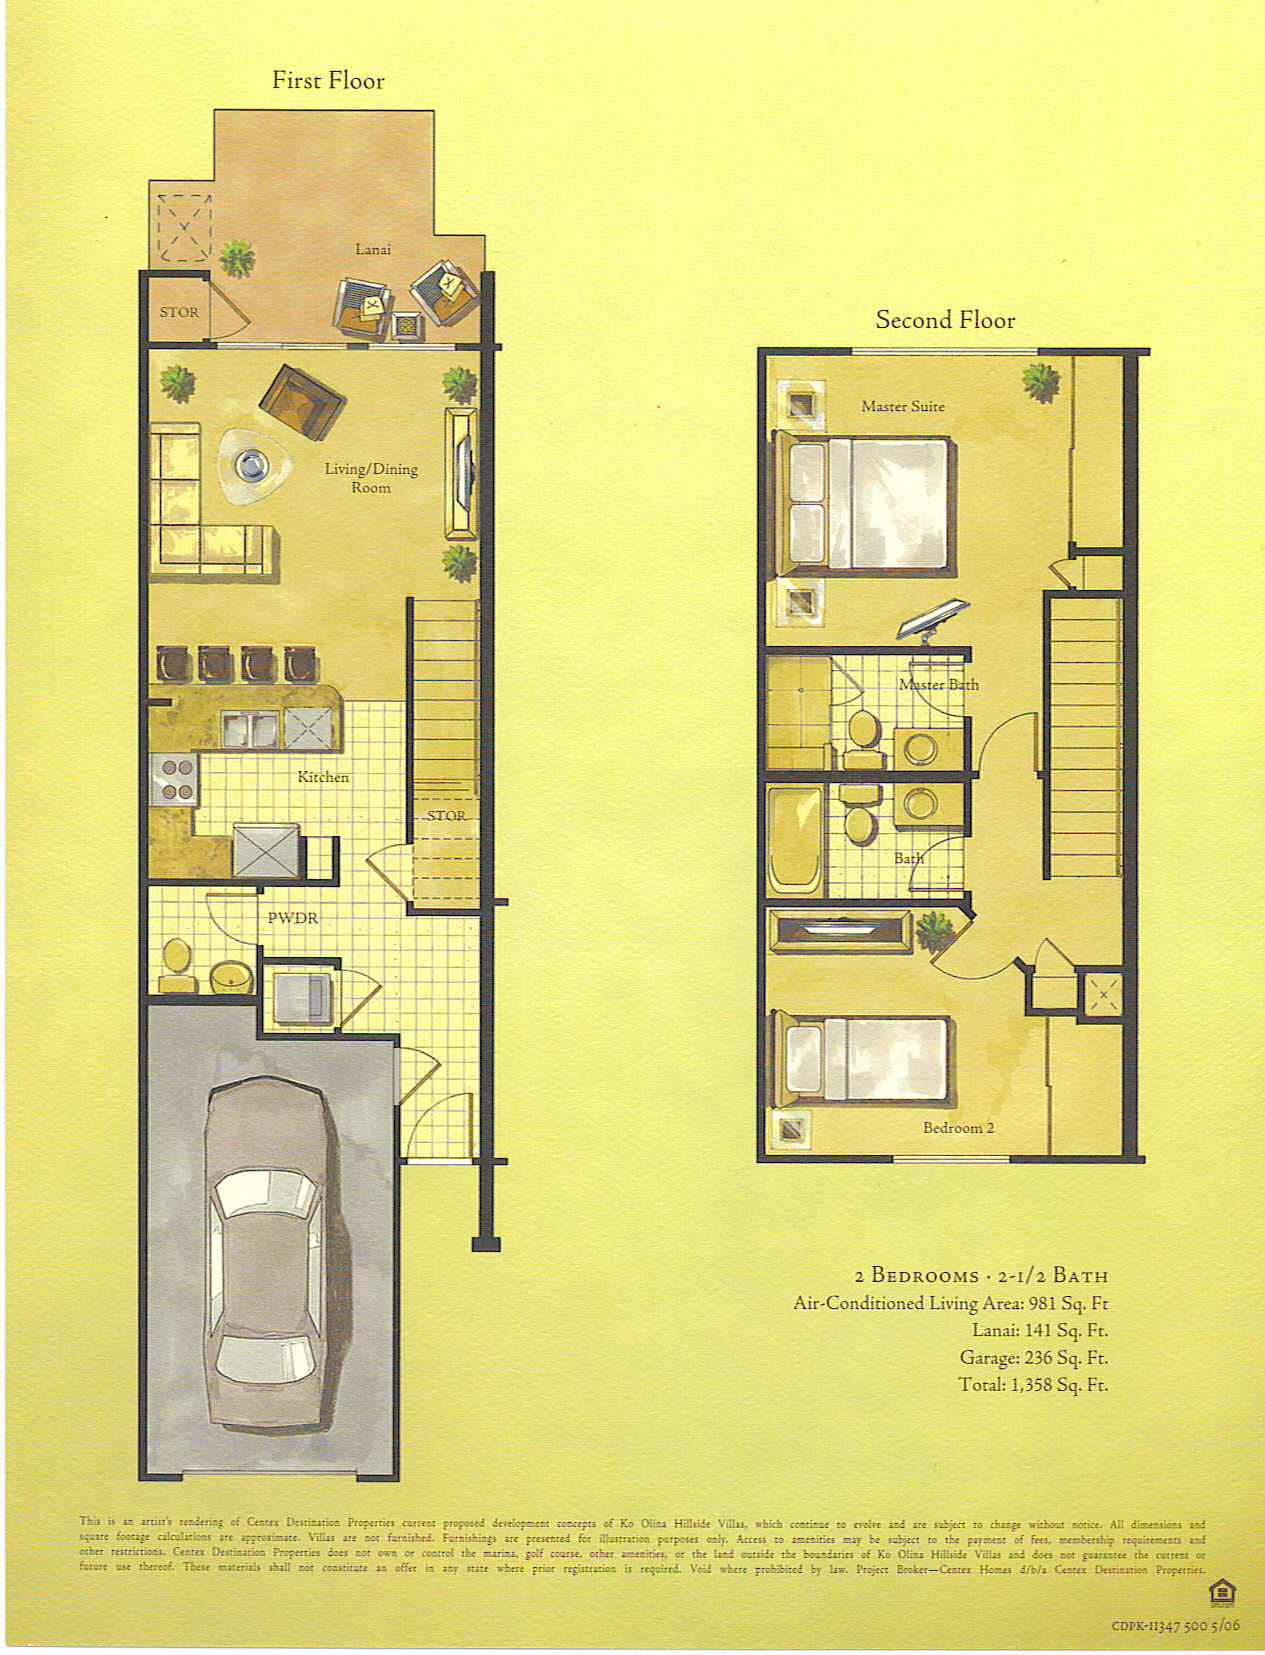 2 Bedroom - 2.5 Bath Living area - 981 sq. ft. Lanai - 141 sq. ft. Garage - 236 sq. ft. Total - 1,358 sq. ft.